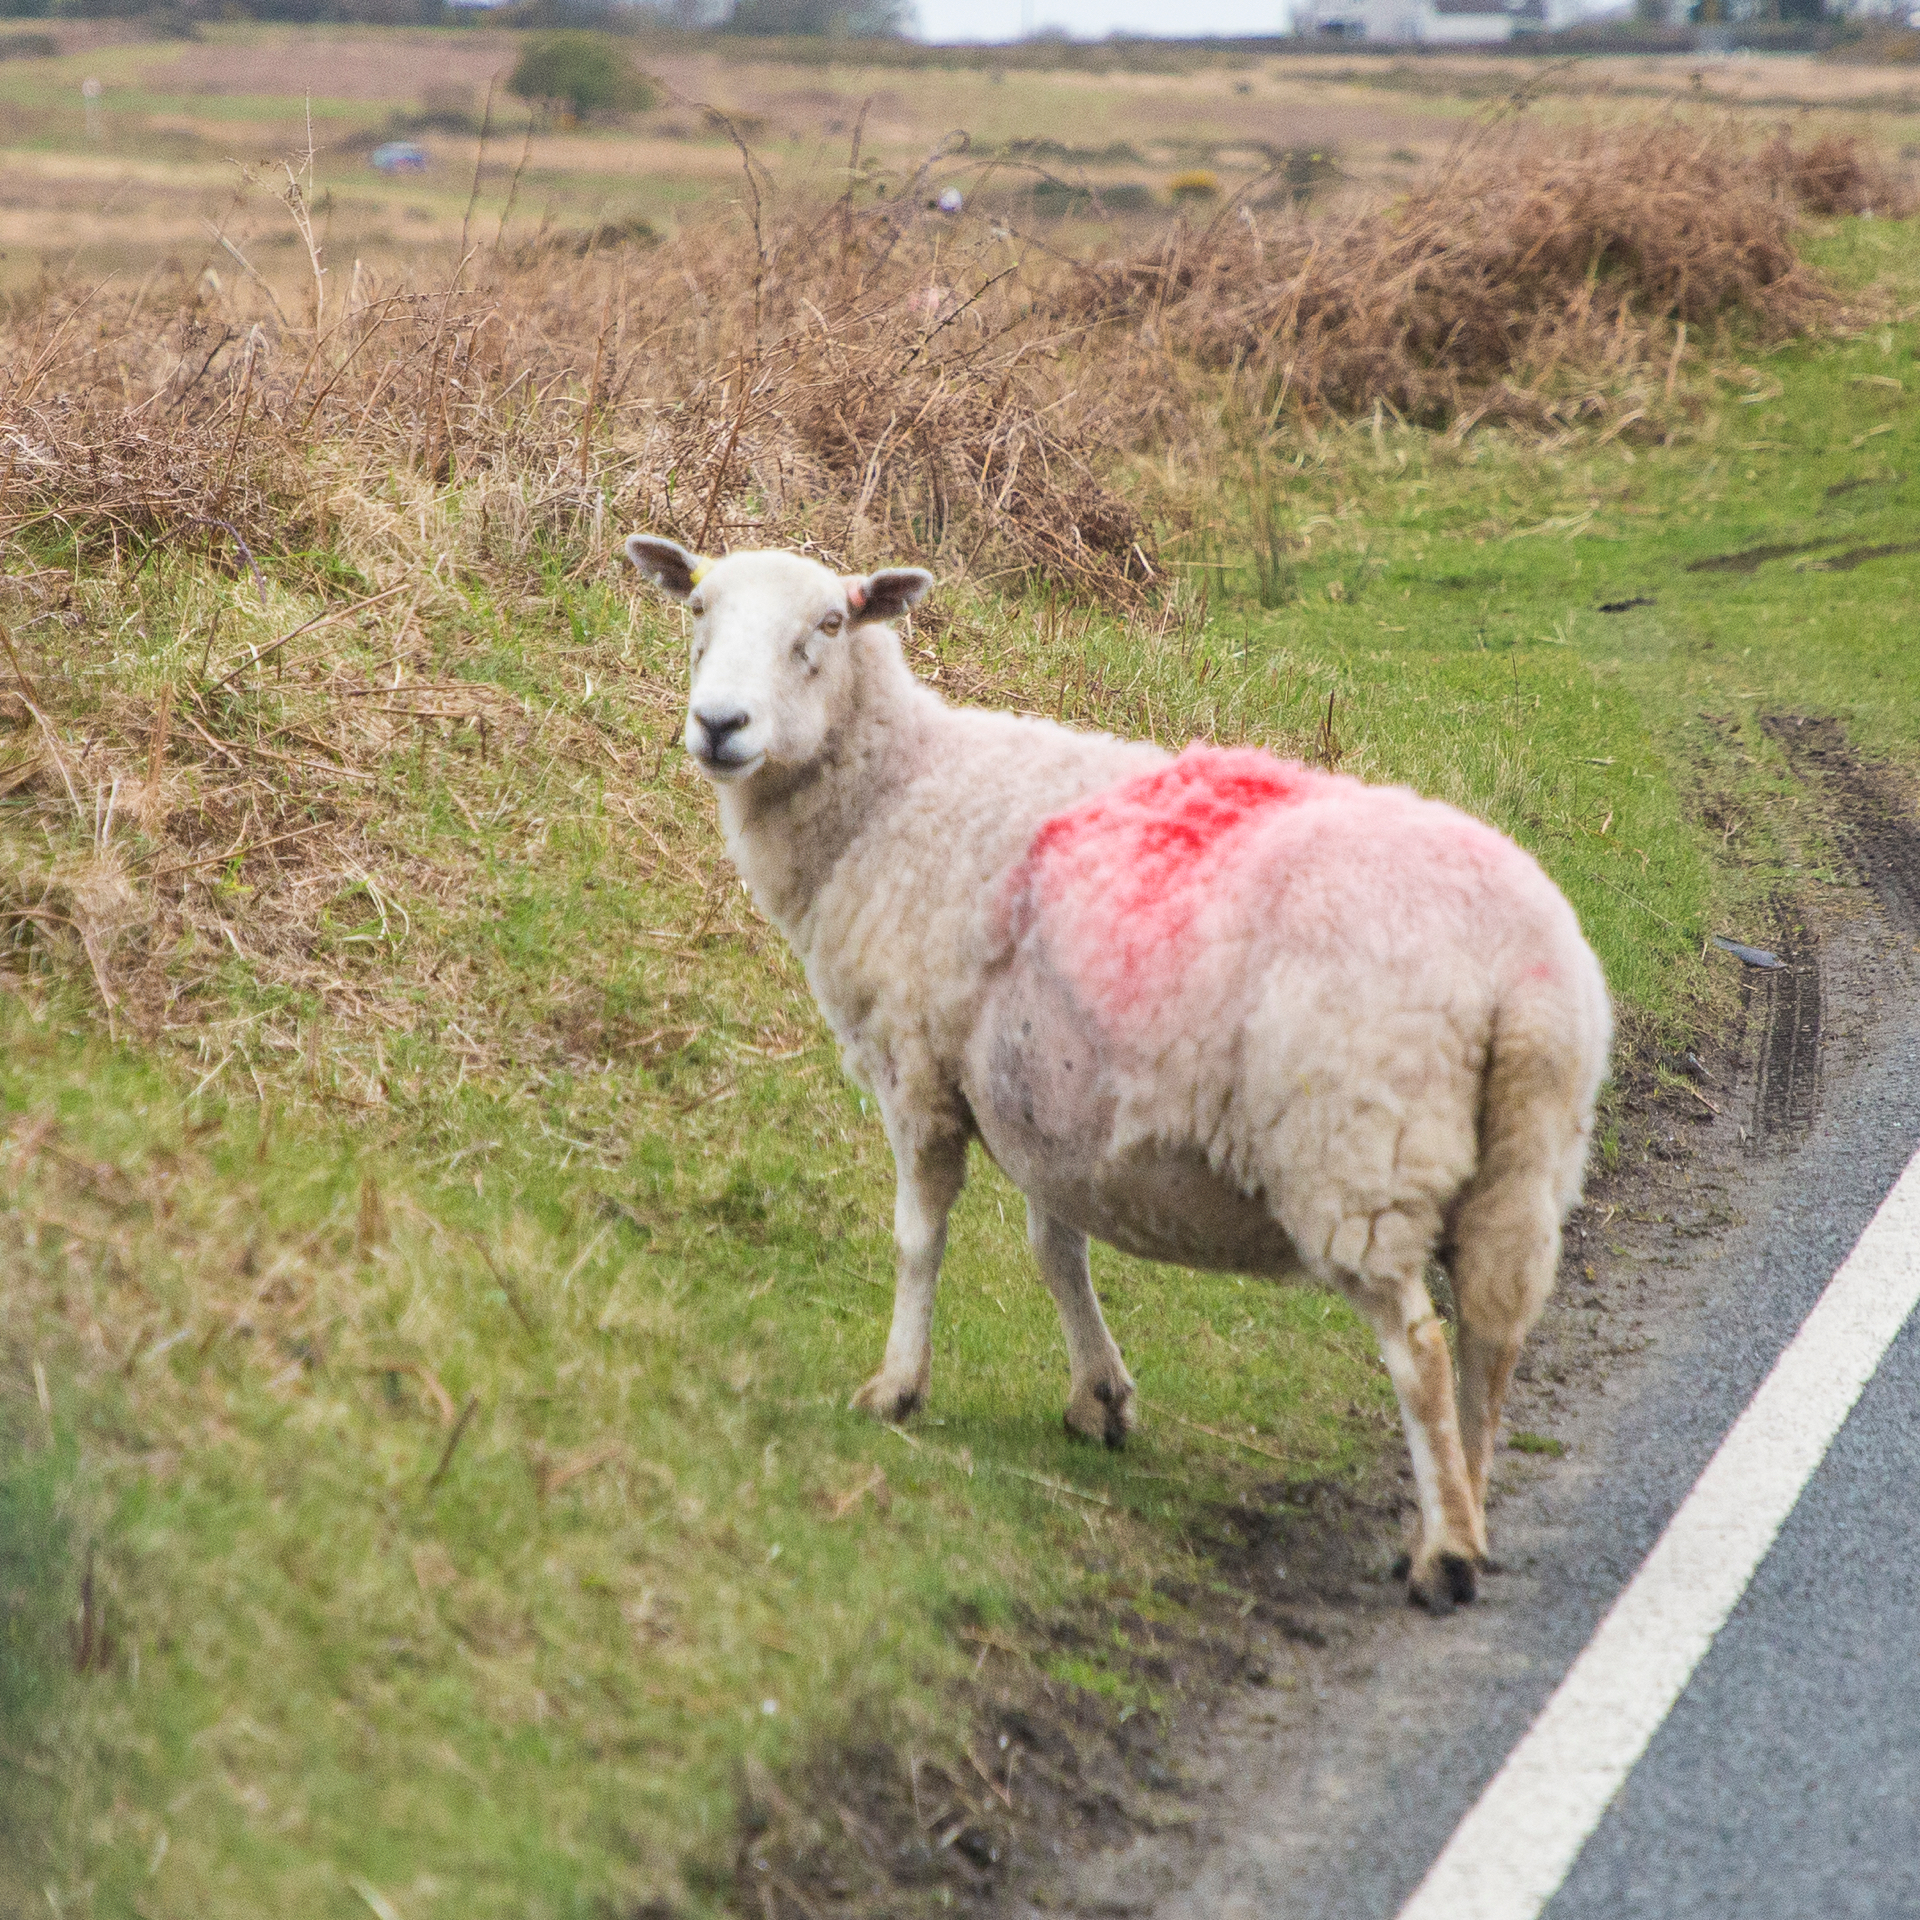 There's no getting away from the sheep!